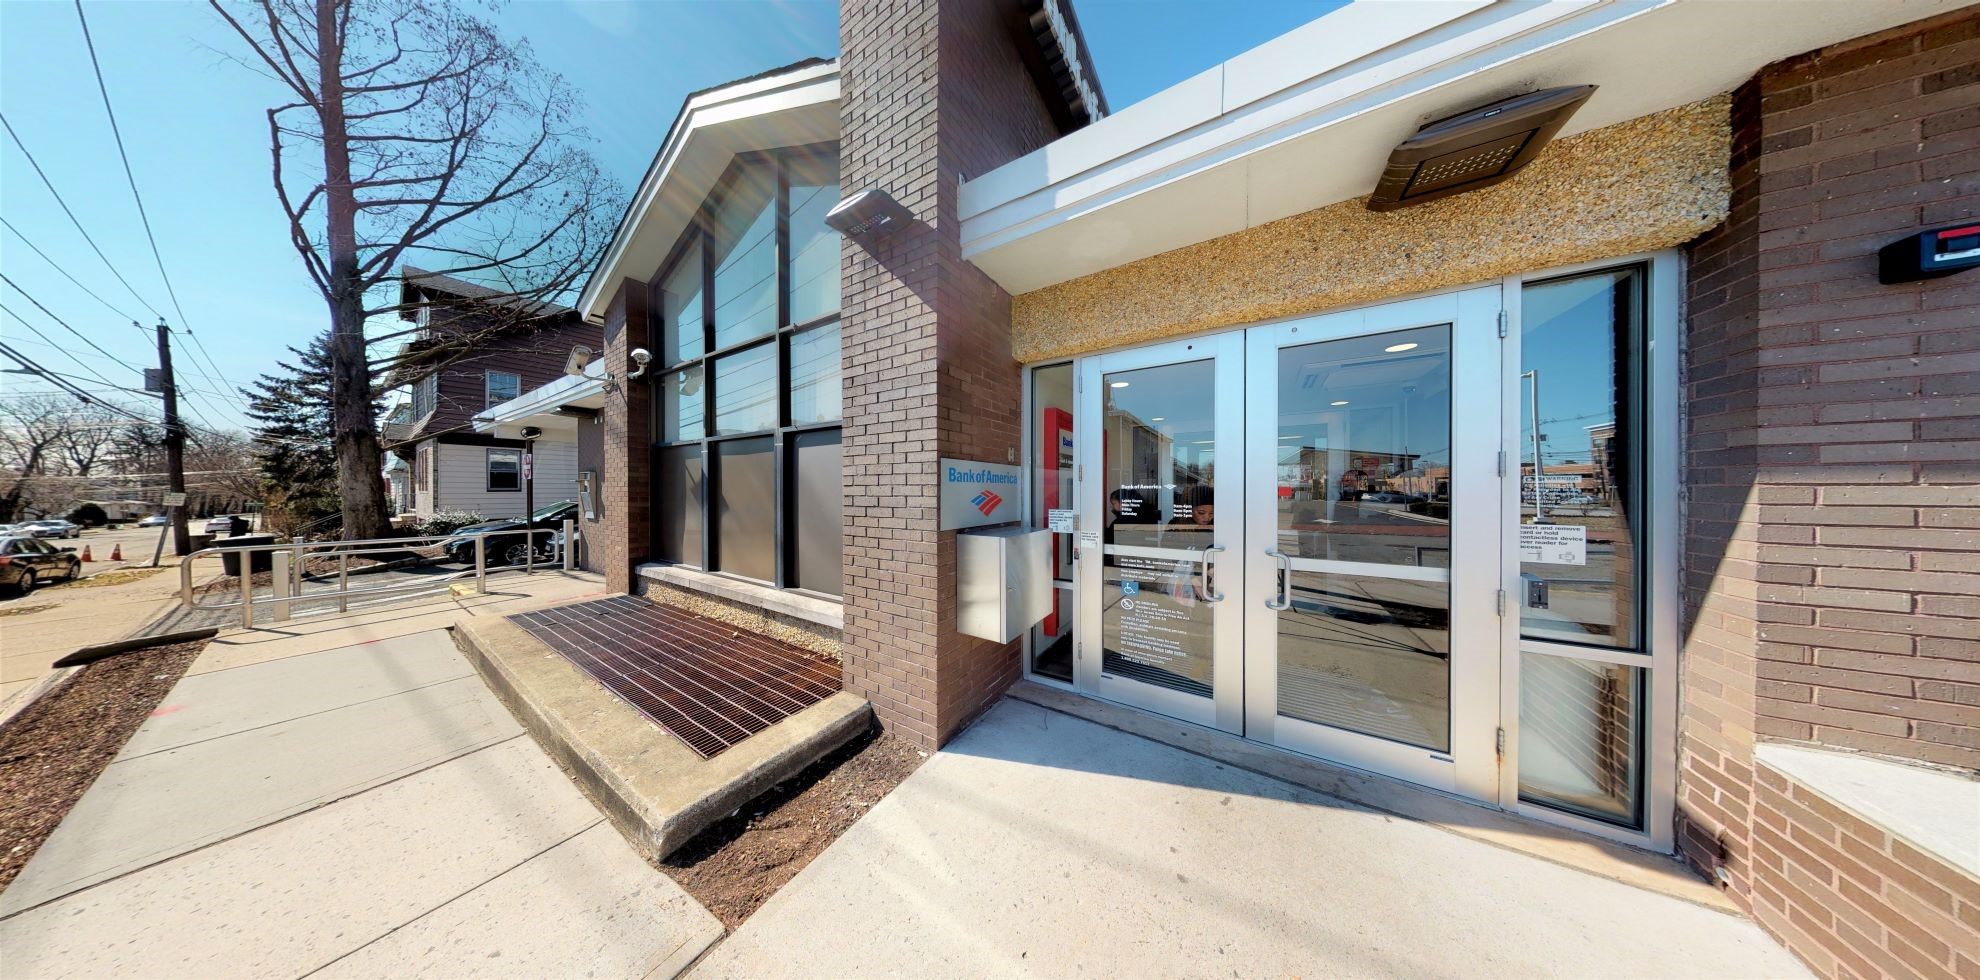 Bank of America financial center with walk-up ATM | 1521 Springfield Ave, Maplewood, NJ 07040